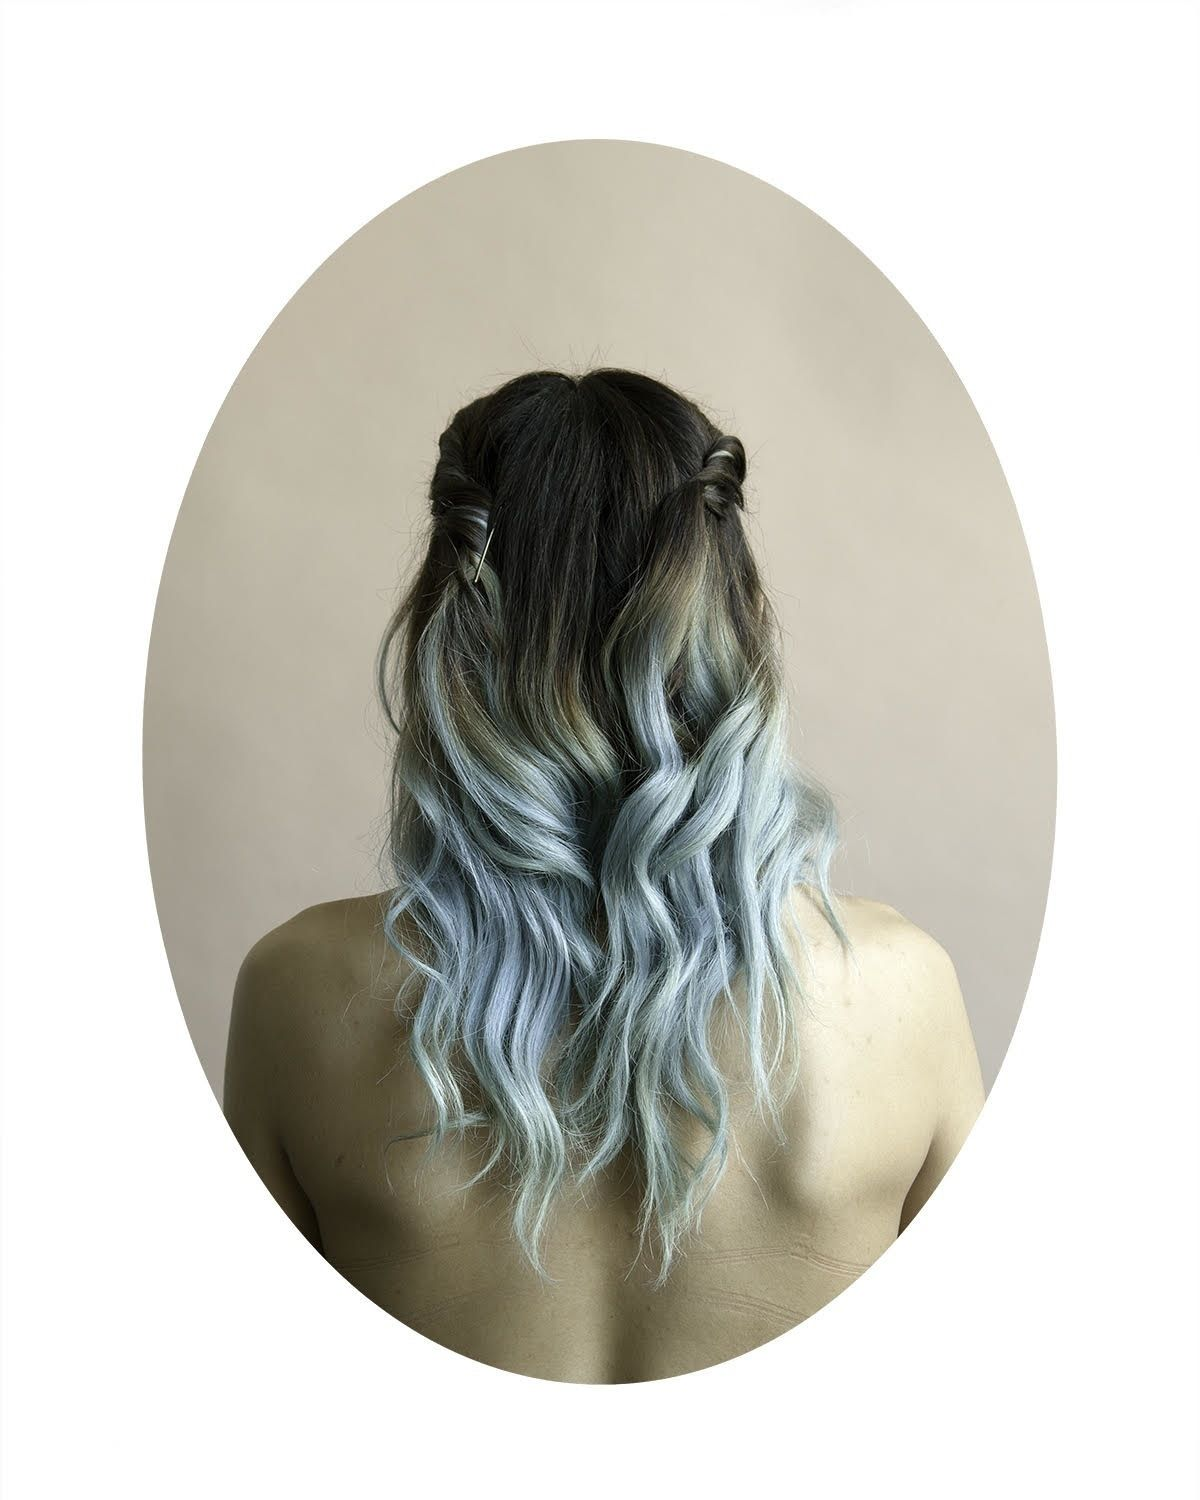 Cataloging millennial hairstyles one dip dye at a time dip dyed